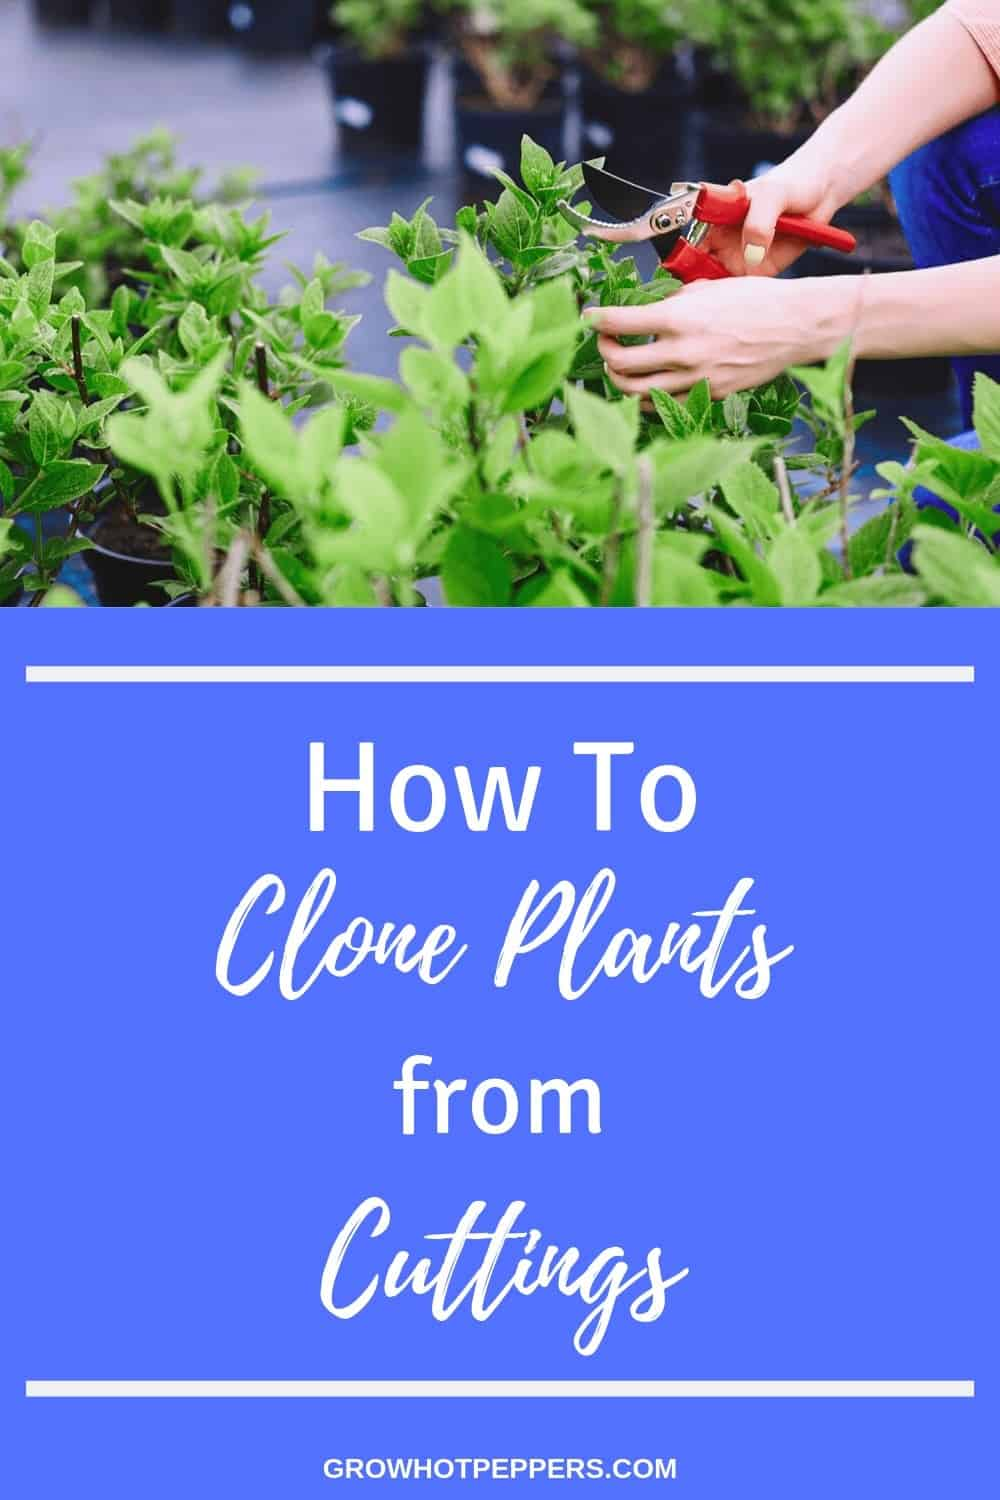 How to Clone Plants from Cuttings